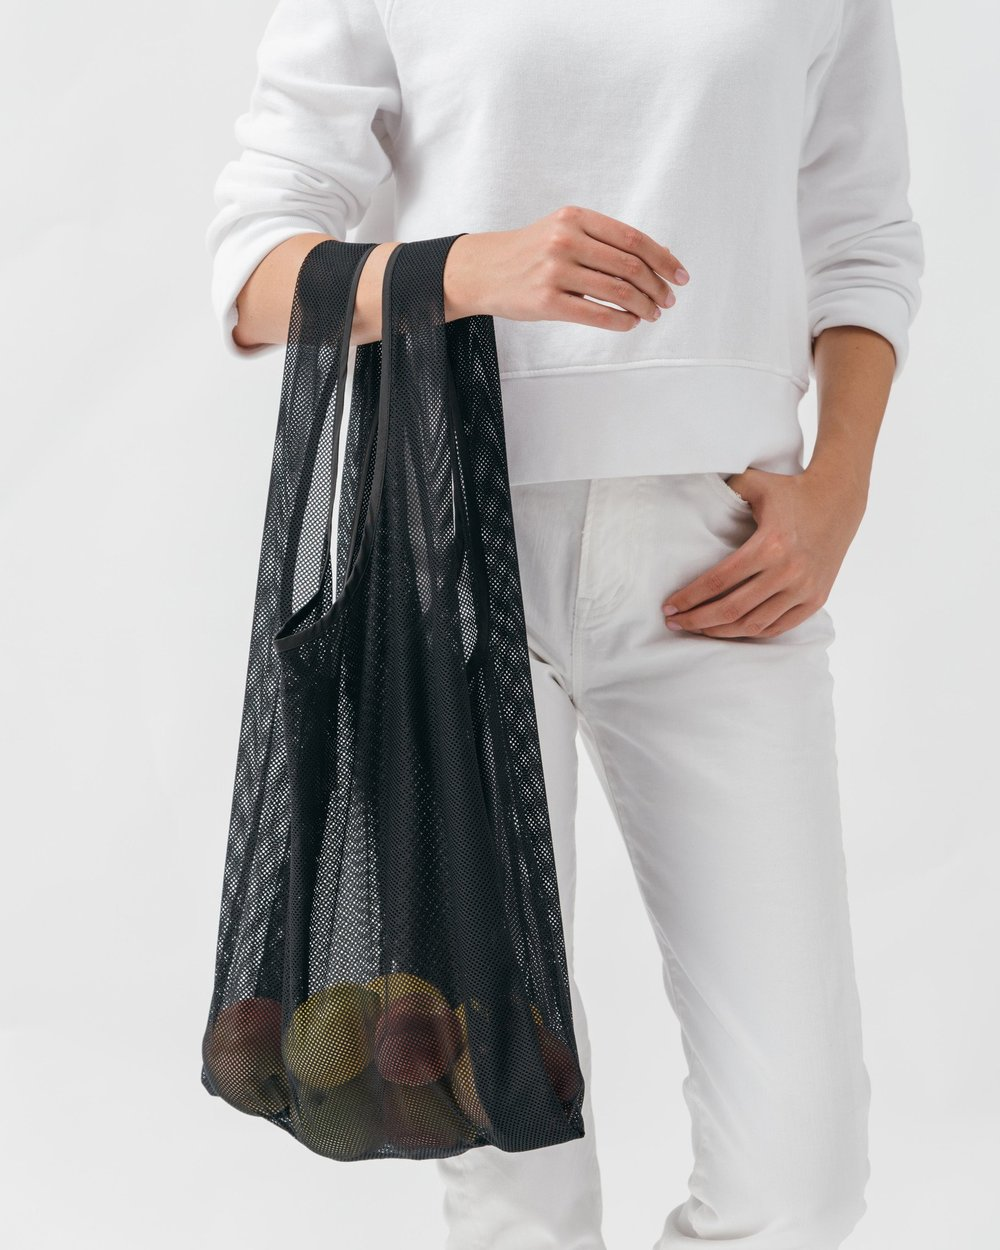 https://baggu.com/collections/reusable-bags/products/7-10874-60274-2?variant=6936197441